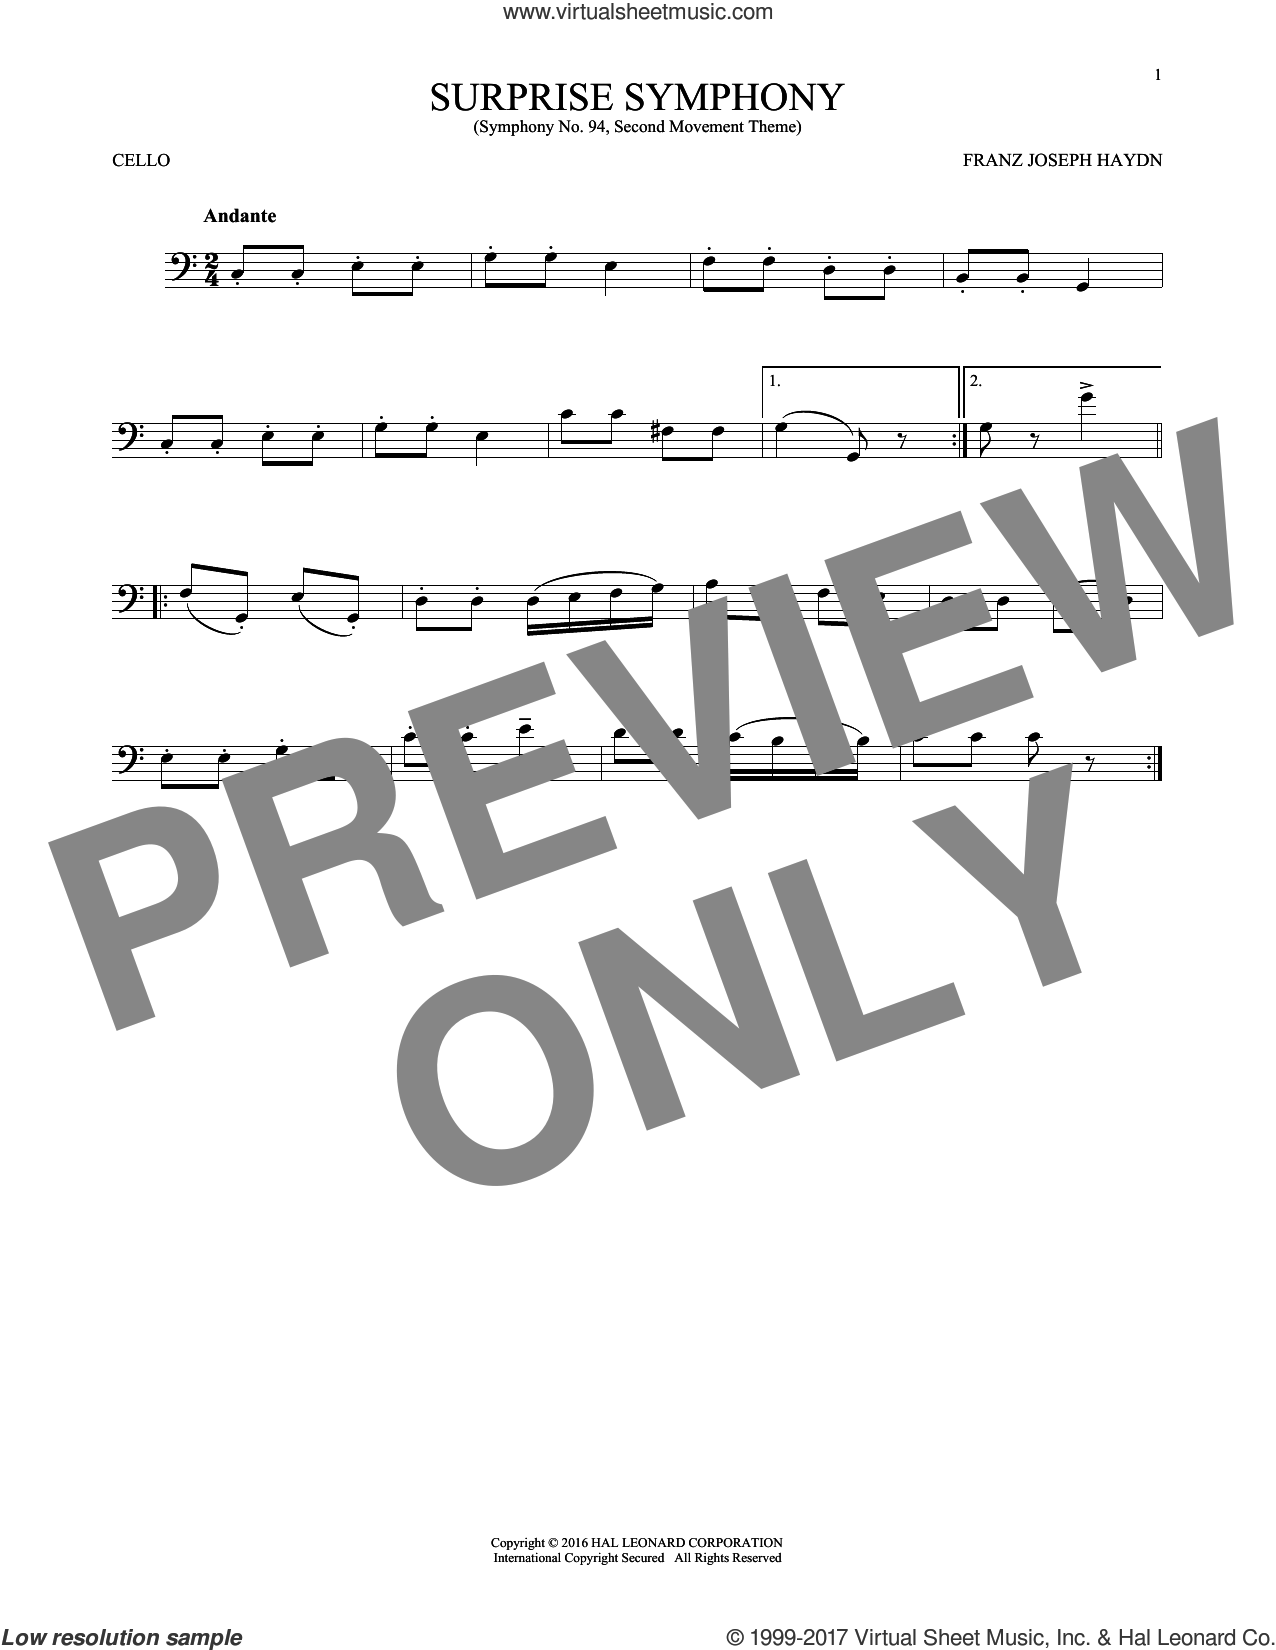 The Surprise Symphony sheet music for cello solo by Franz Joseph Haydn, classical score, intermediate skill level